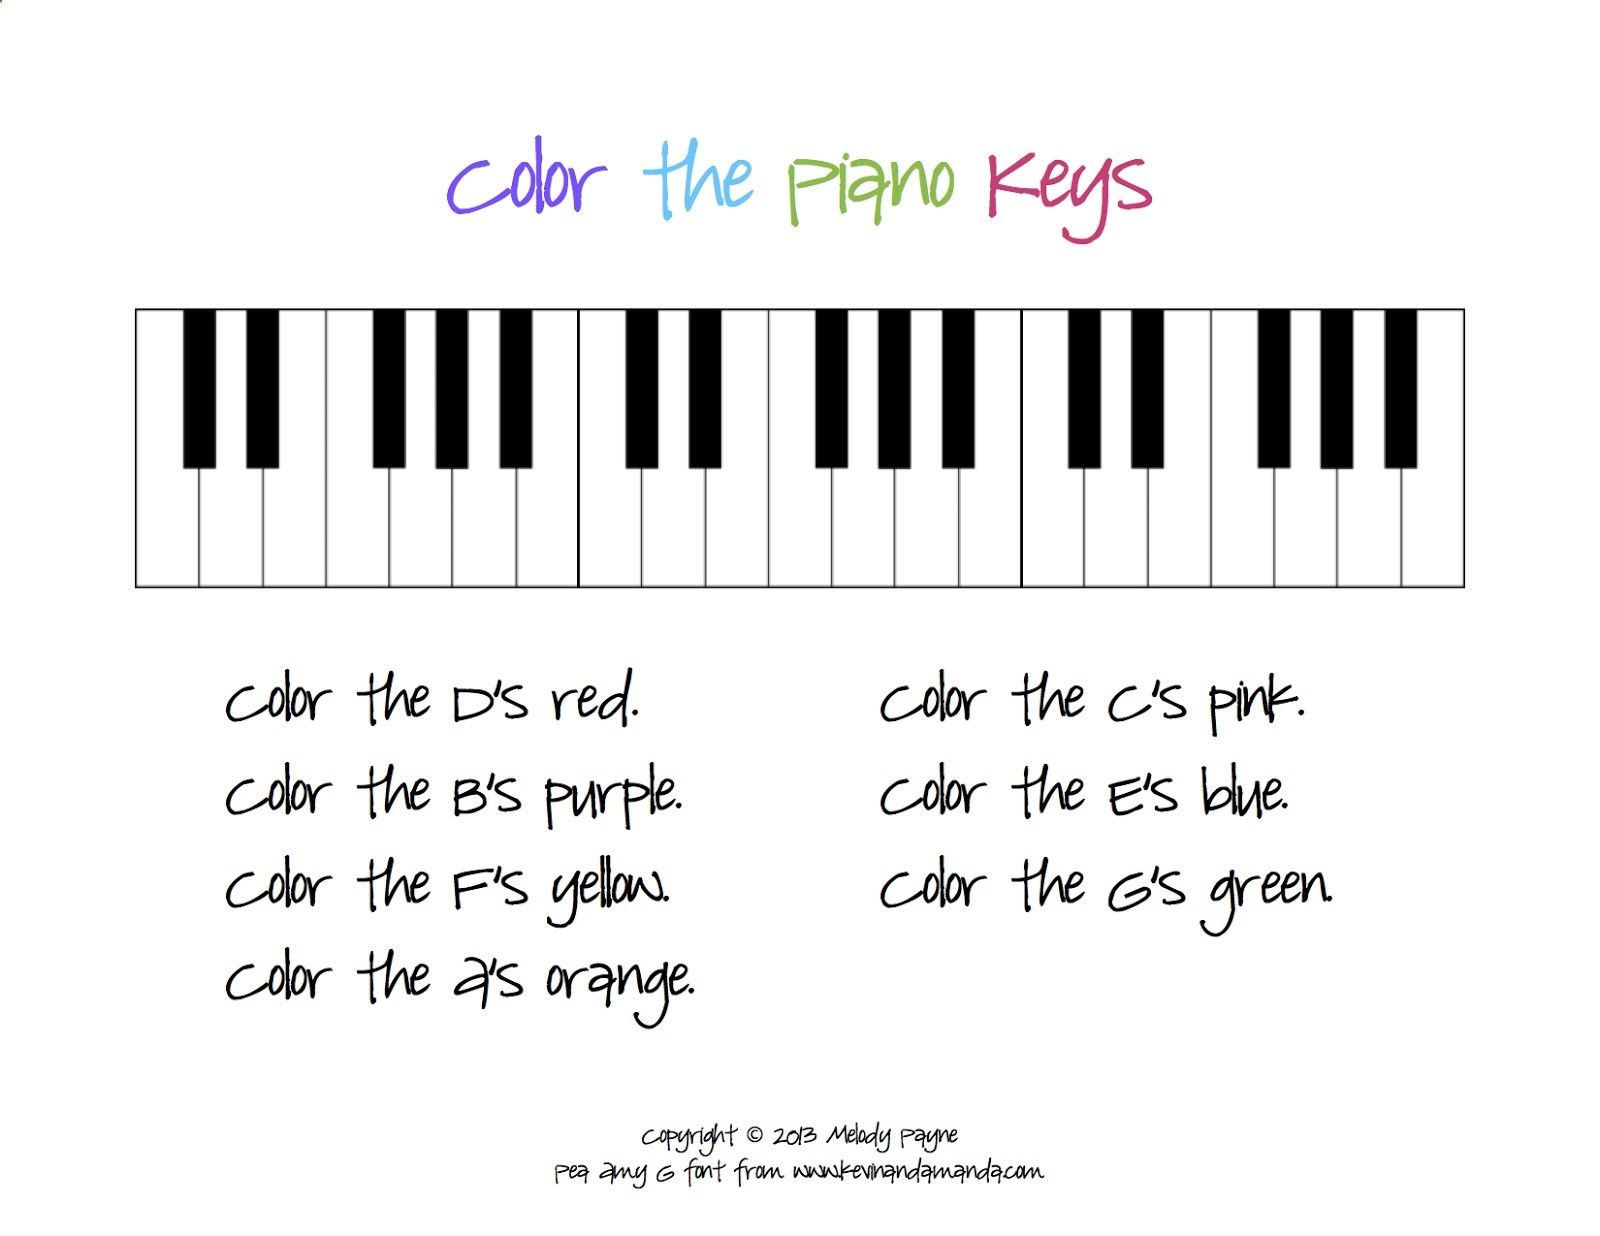 Worksheets Piano Worksheets piano worksheets who are learning the letter names of keys